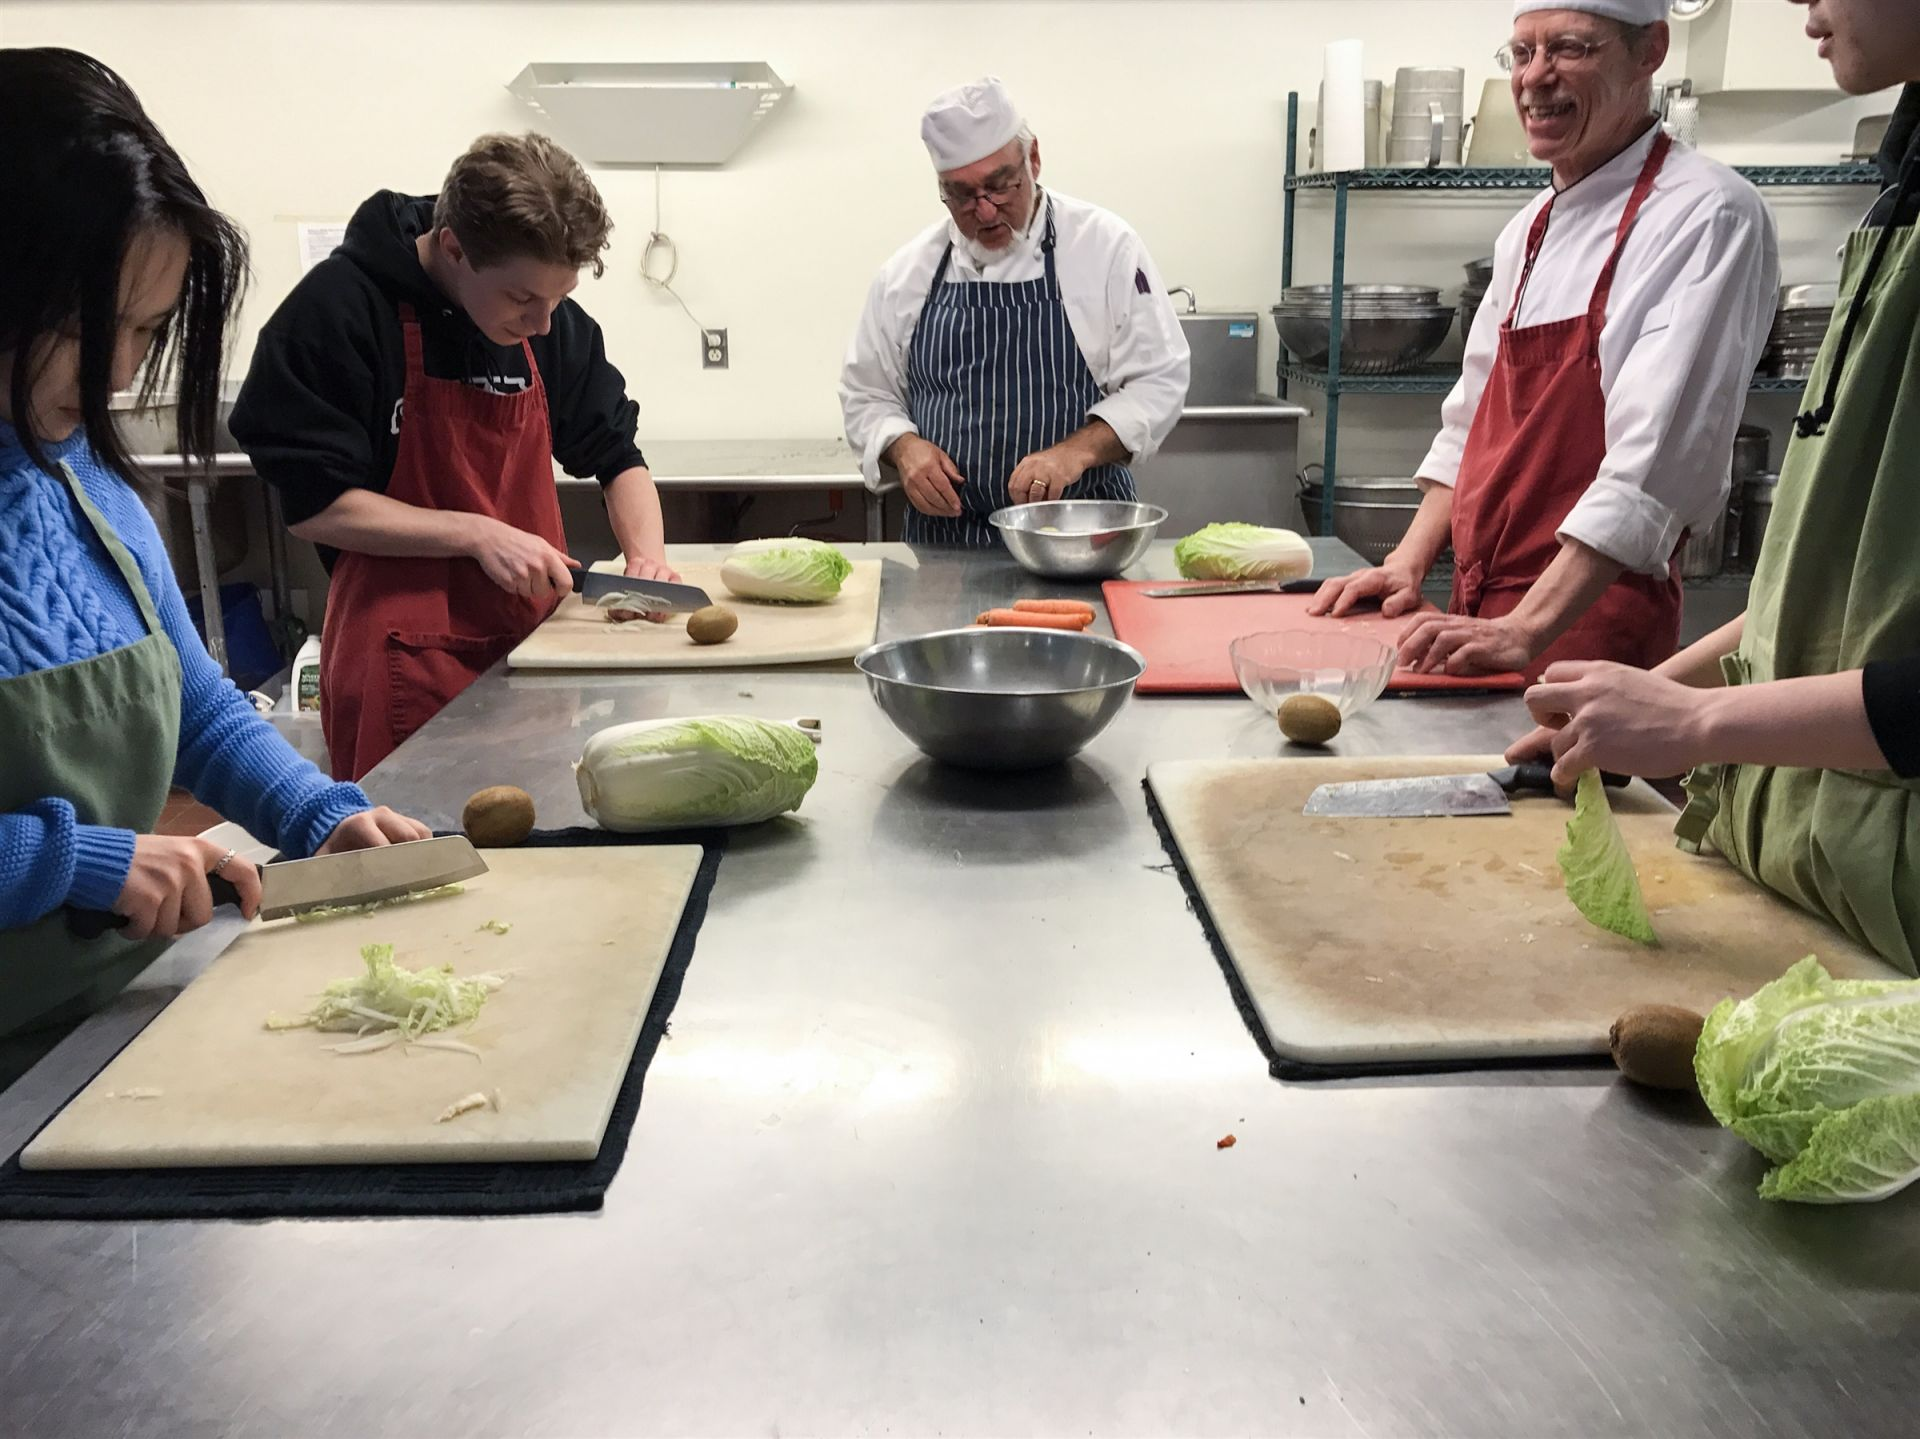 Under instruction of head chefs Evan Fielding and Victor Beguin, the culinary class learns the science behind cooking while helping prepare dinner for the rest of the school.